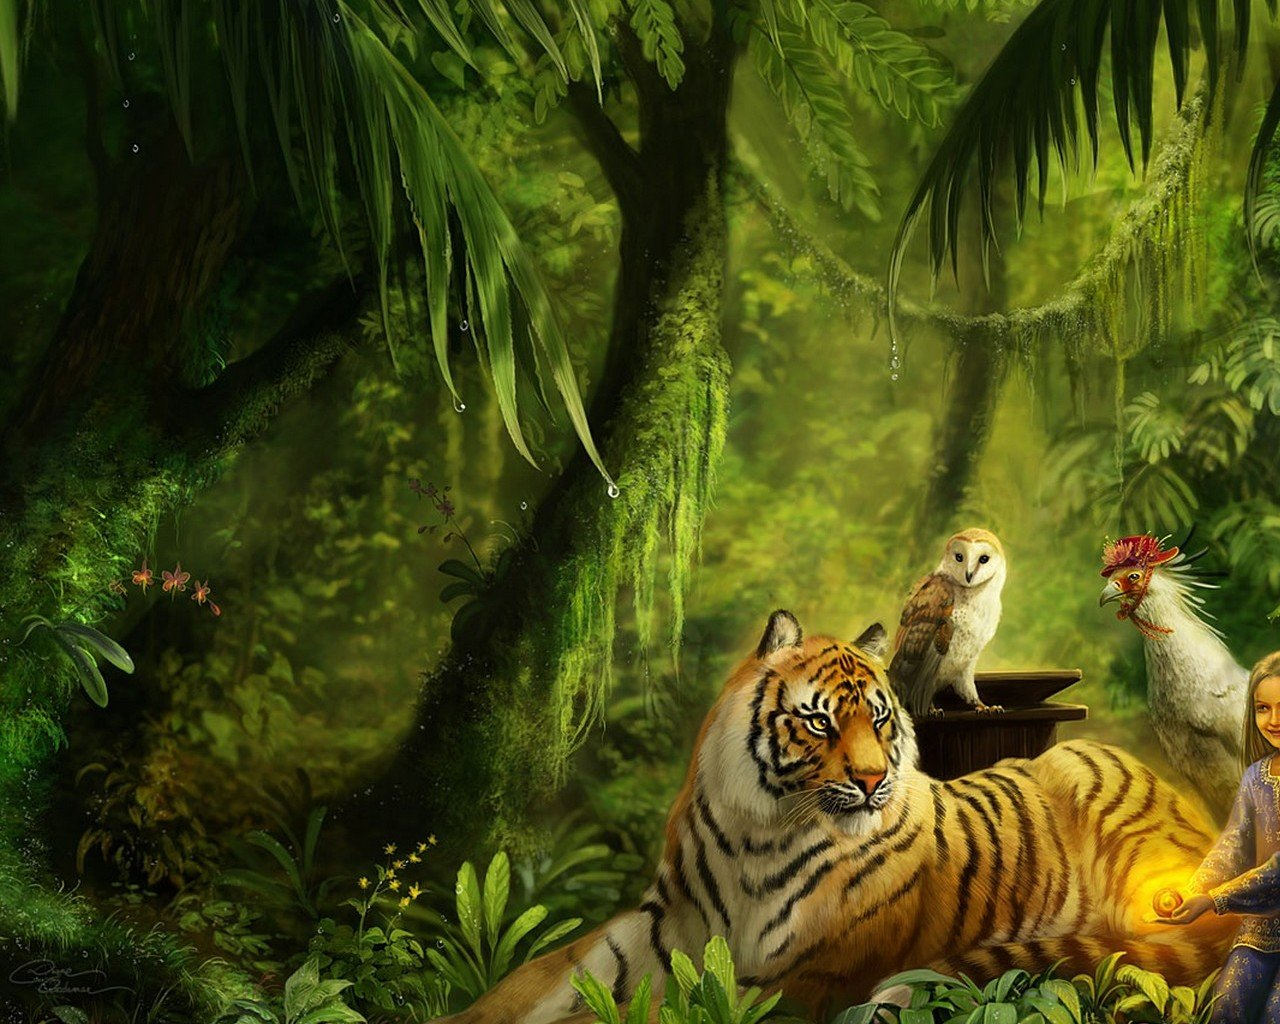 Free Tiger high quality wallpaper ID:115693 for hd 1280x1024 desktop